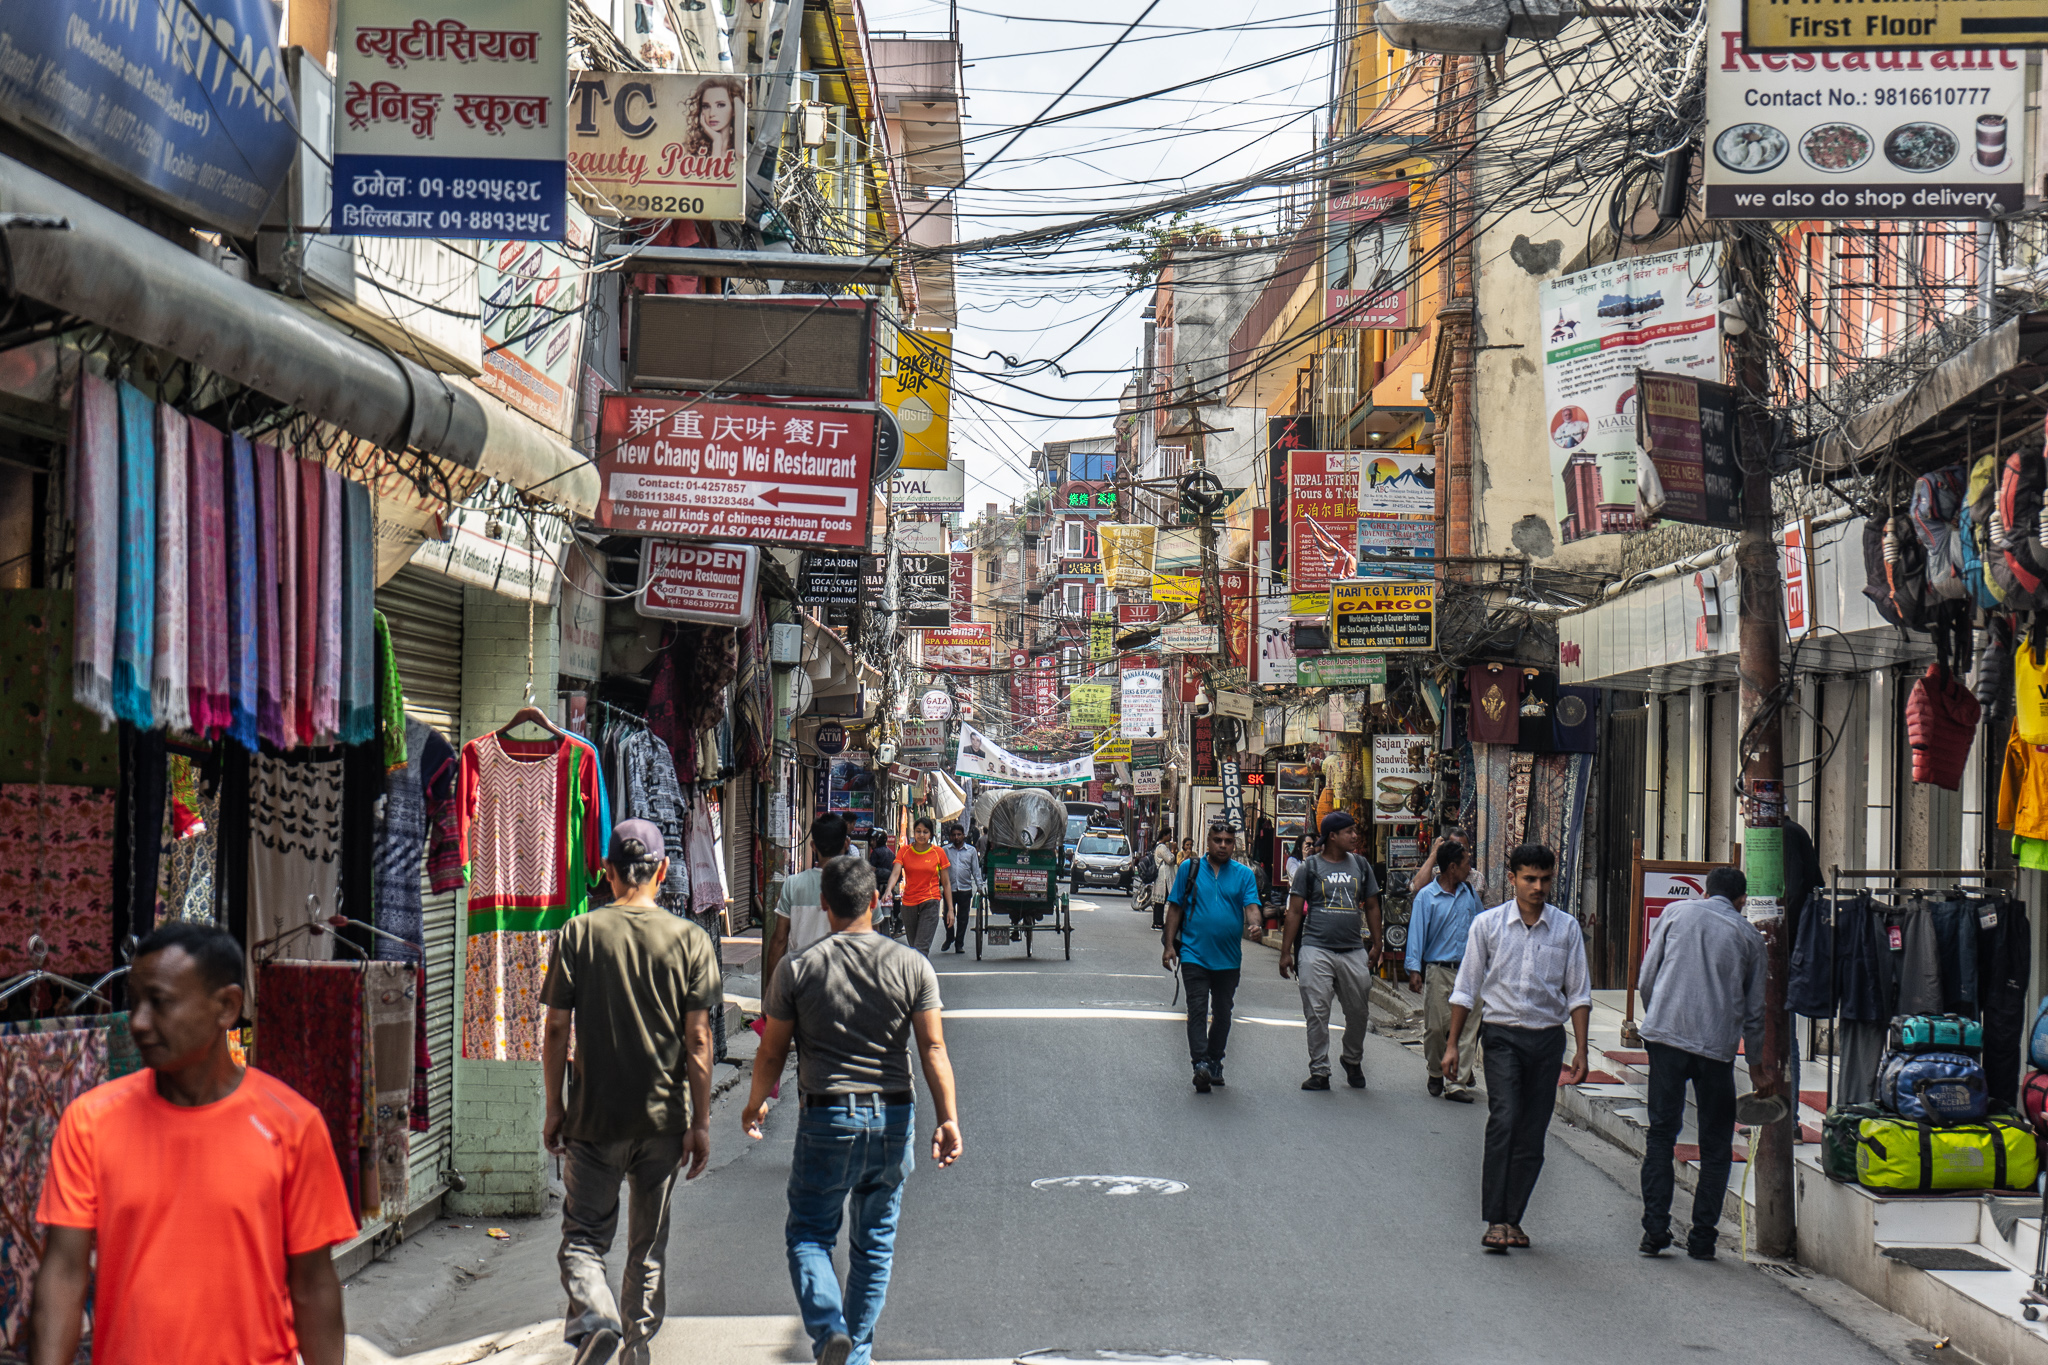 The Best Places to Visit in Kathmandu!